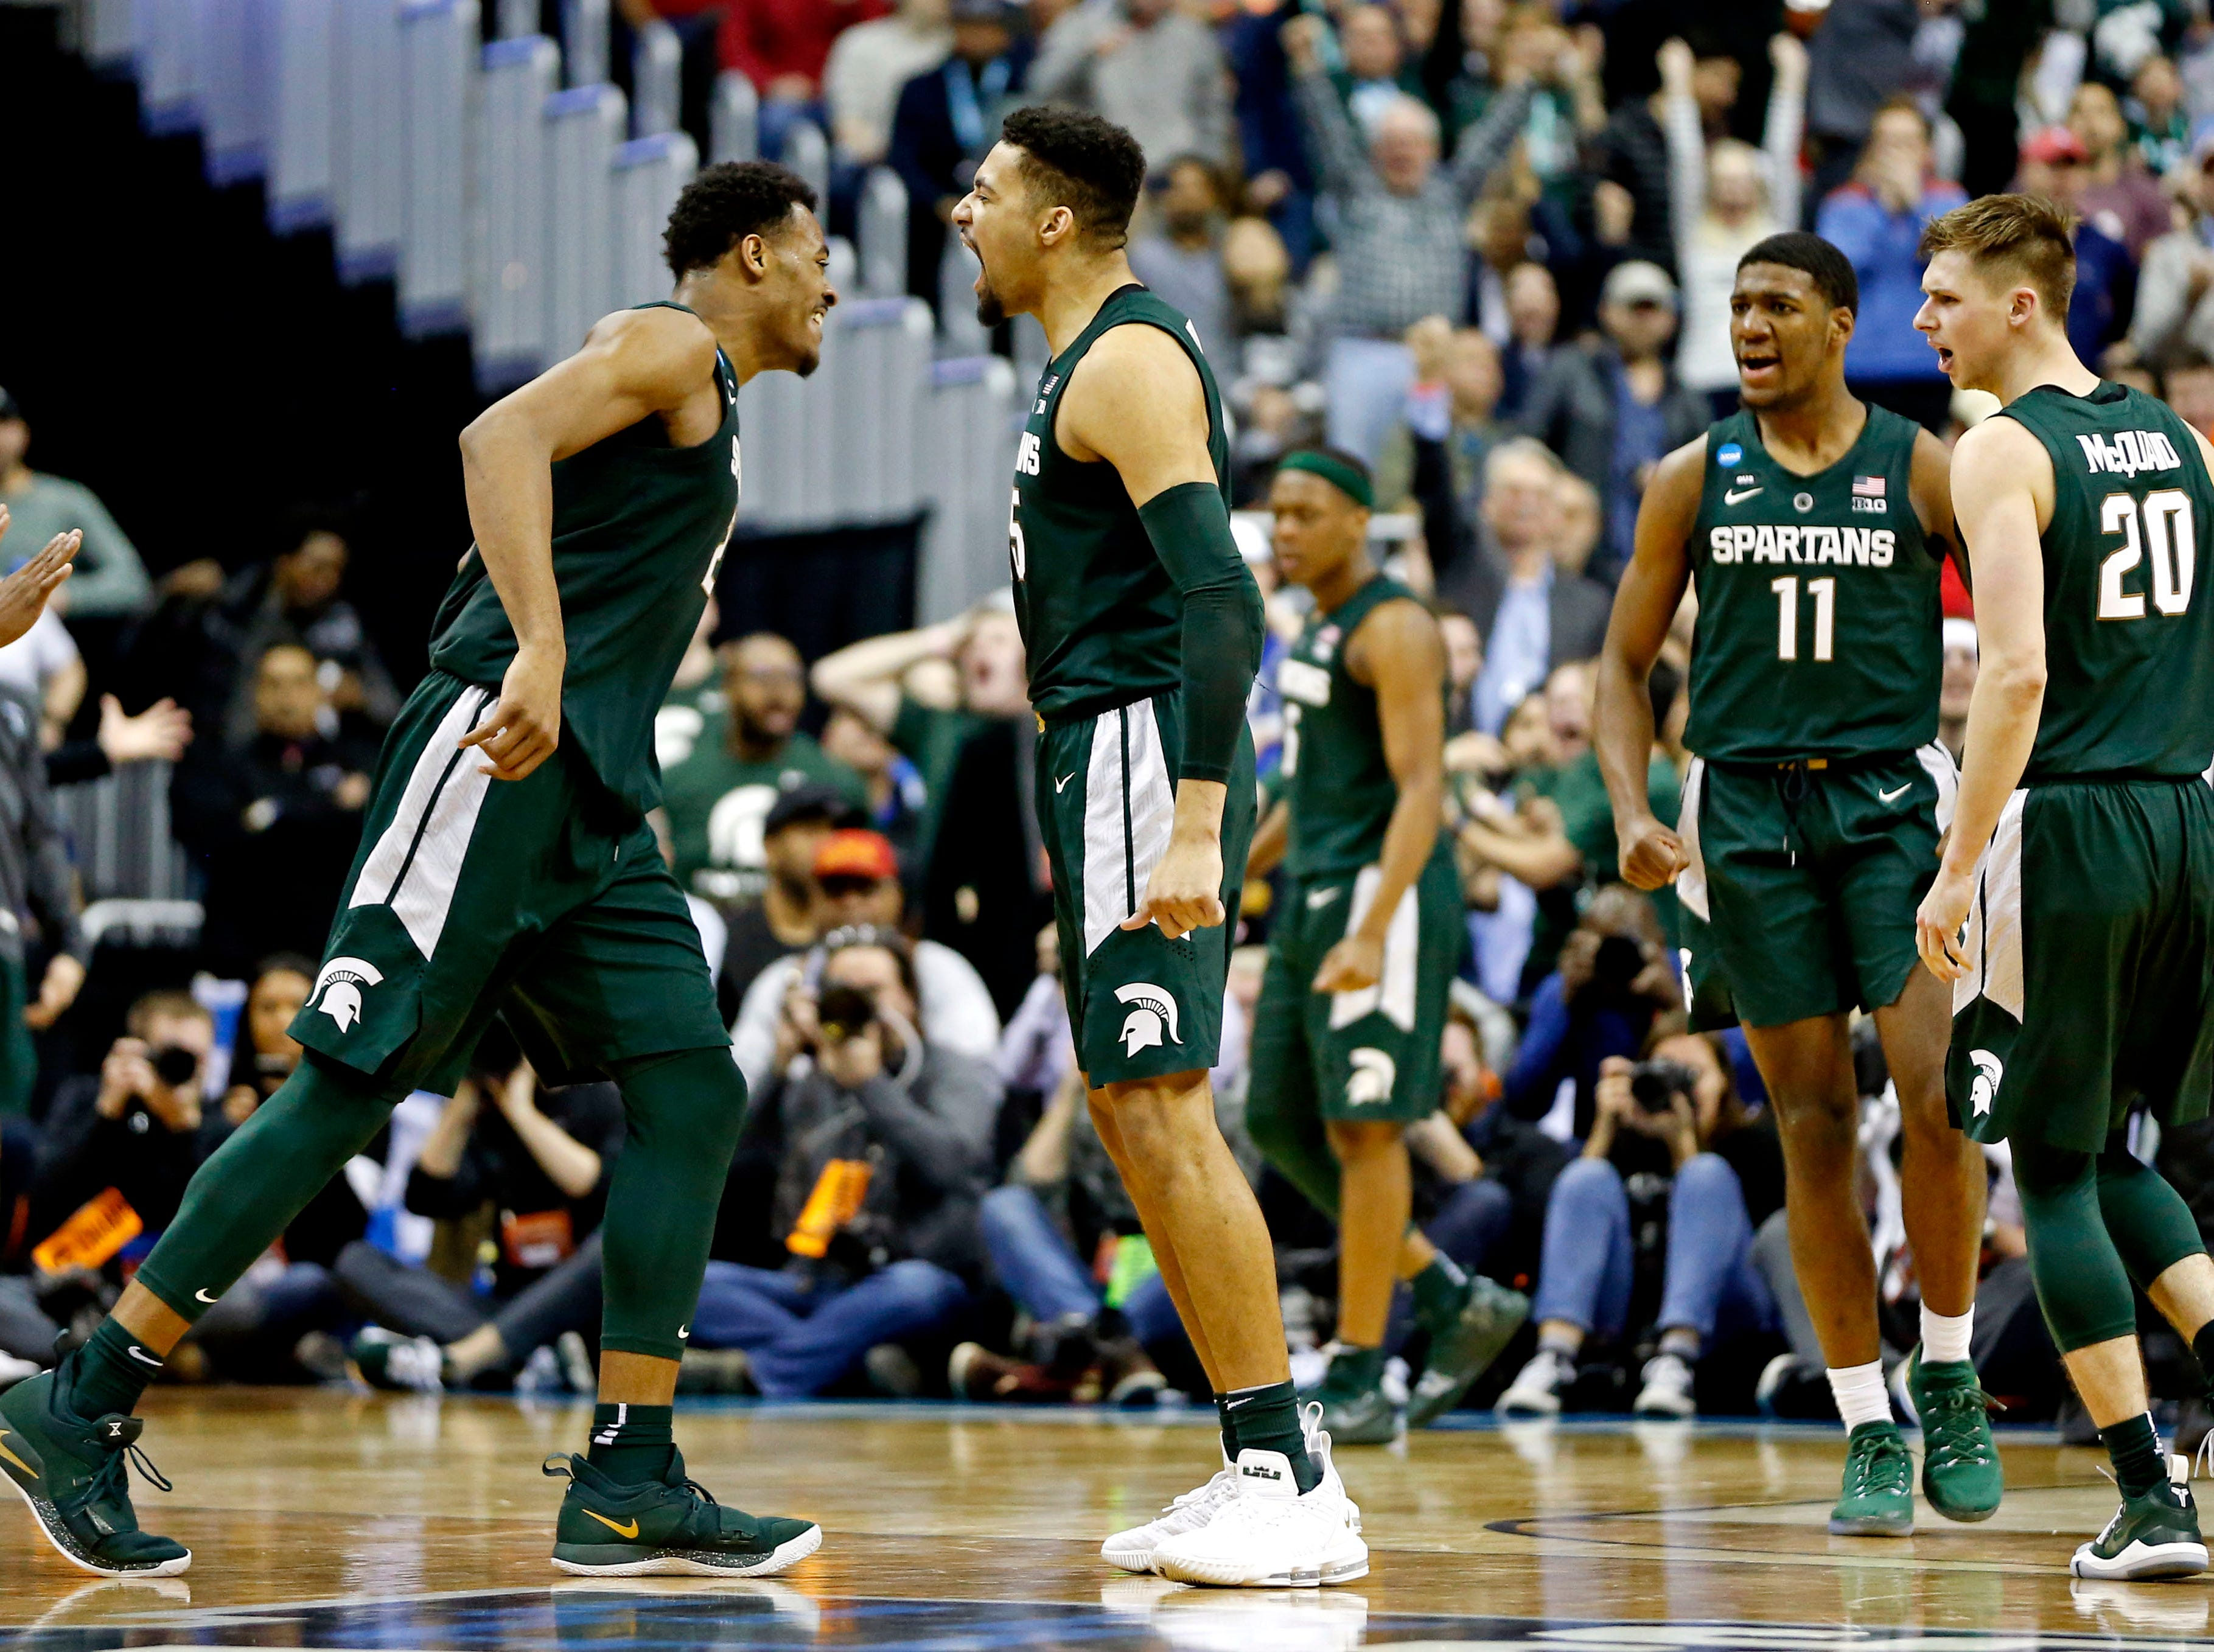 Mar 31, 2019; Washington, DC, USA; Michigan State Spartans forward Kenny Goins (25) celebrated with Michigan State Spartans forward Xavier Tillman (23) during the second half against the Duke Blue Devils in the championship game of the east regional of the 2019 NCAA Tournament at Capital One Arena. Mandatory Credit: Amber Searls-USA TODAY Sports